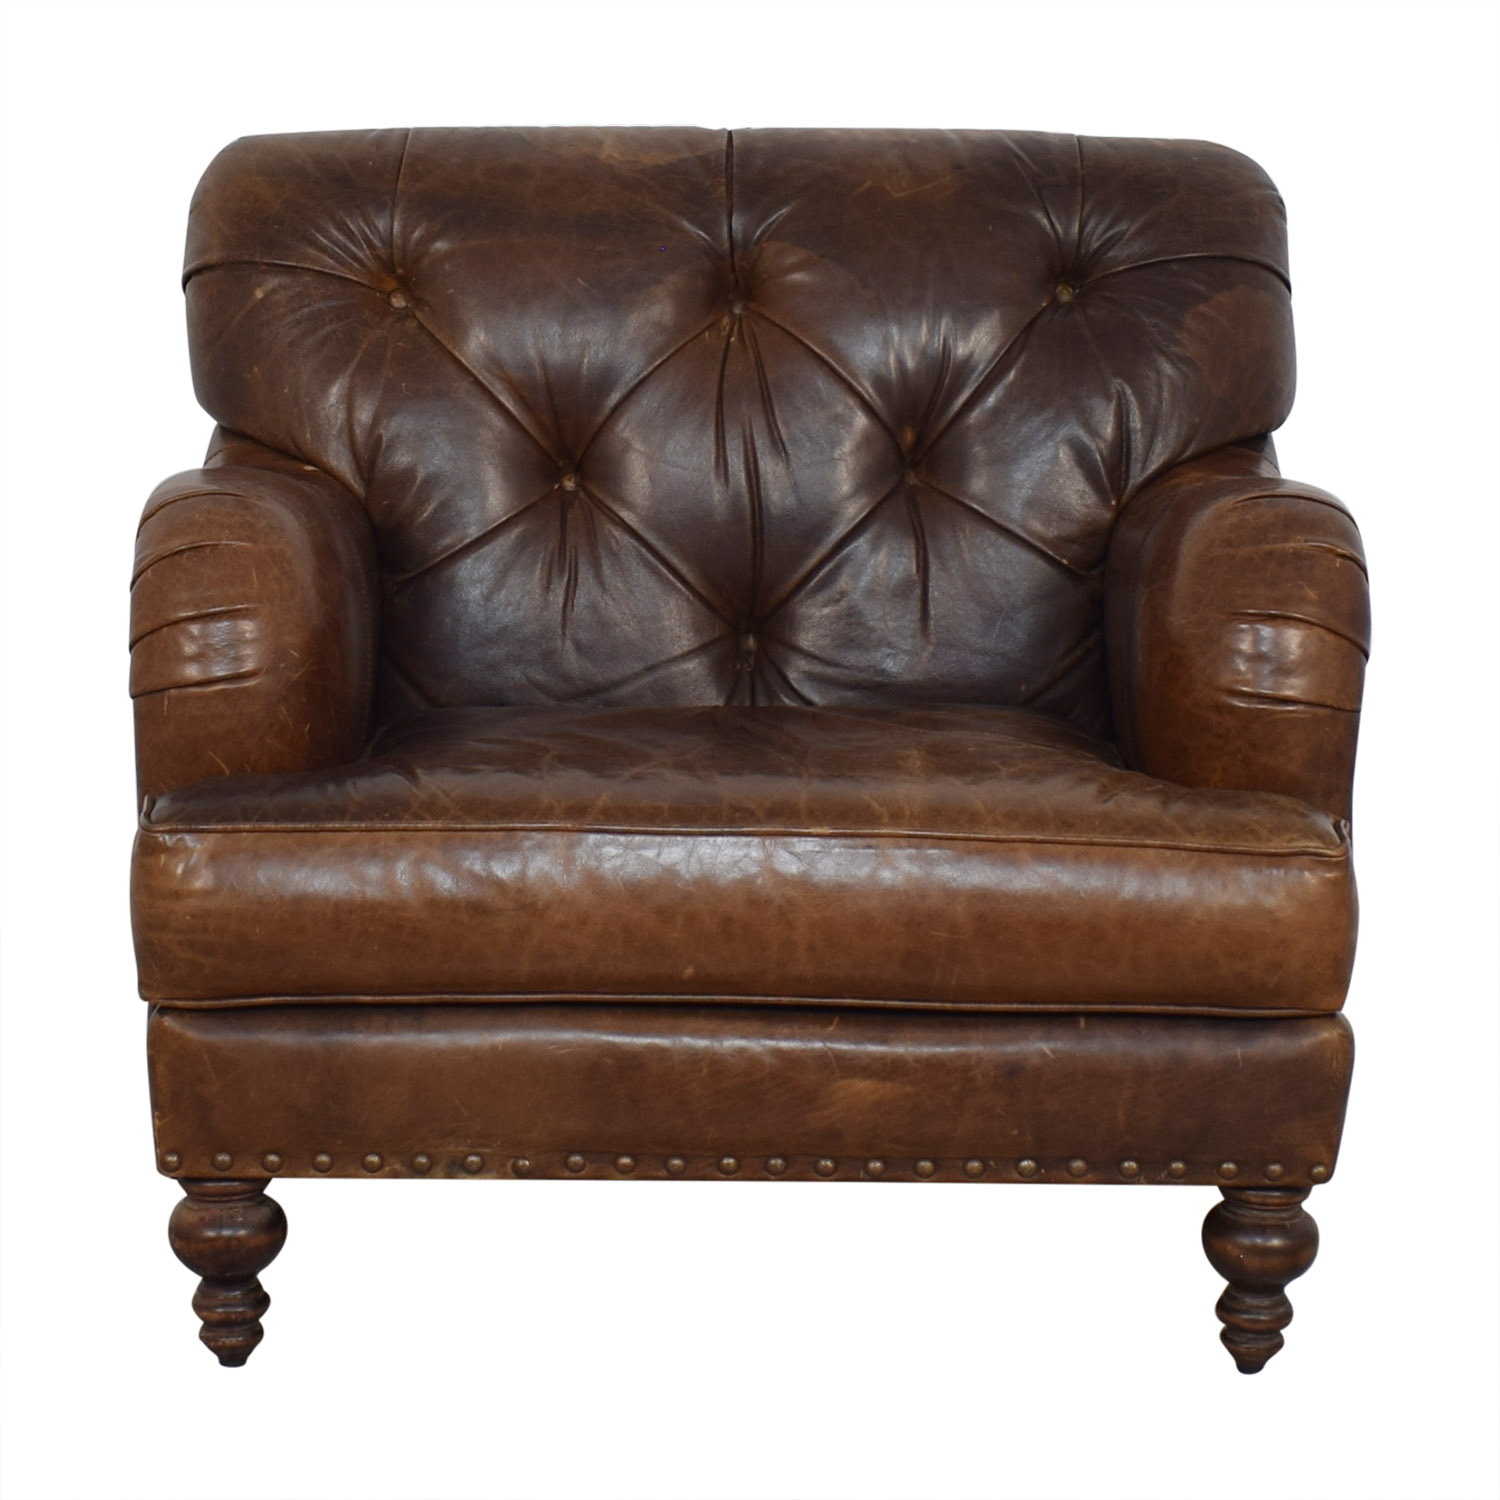 COCOCO COCOCO Chesterfield Accent Chair price